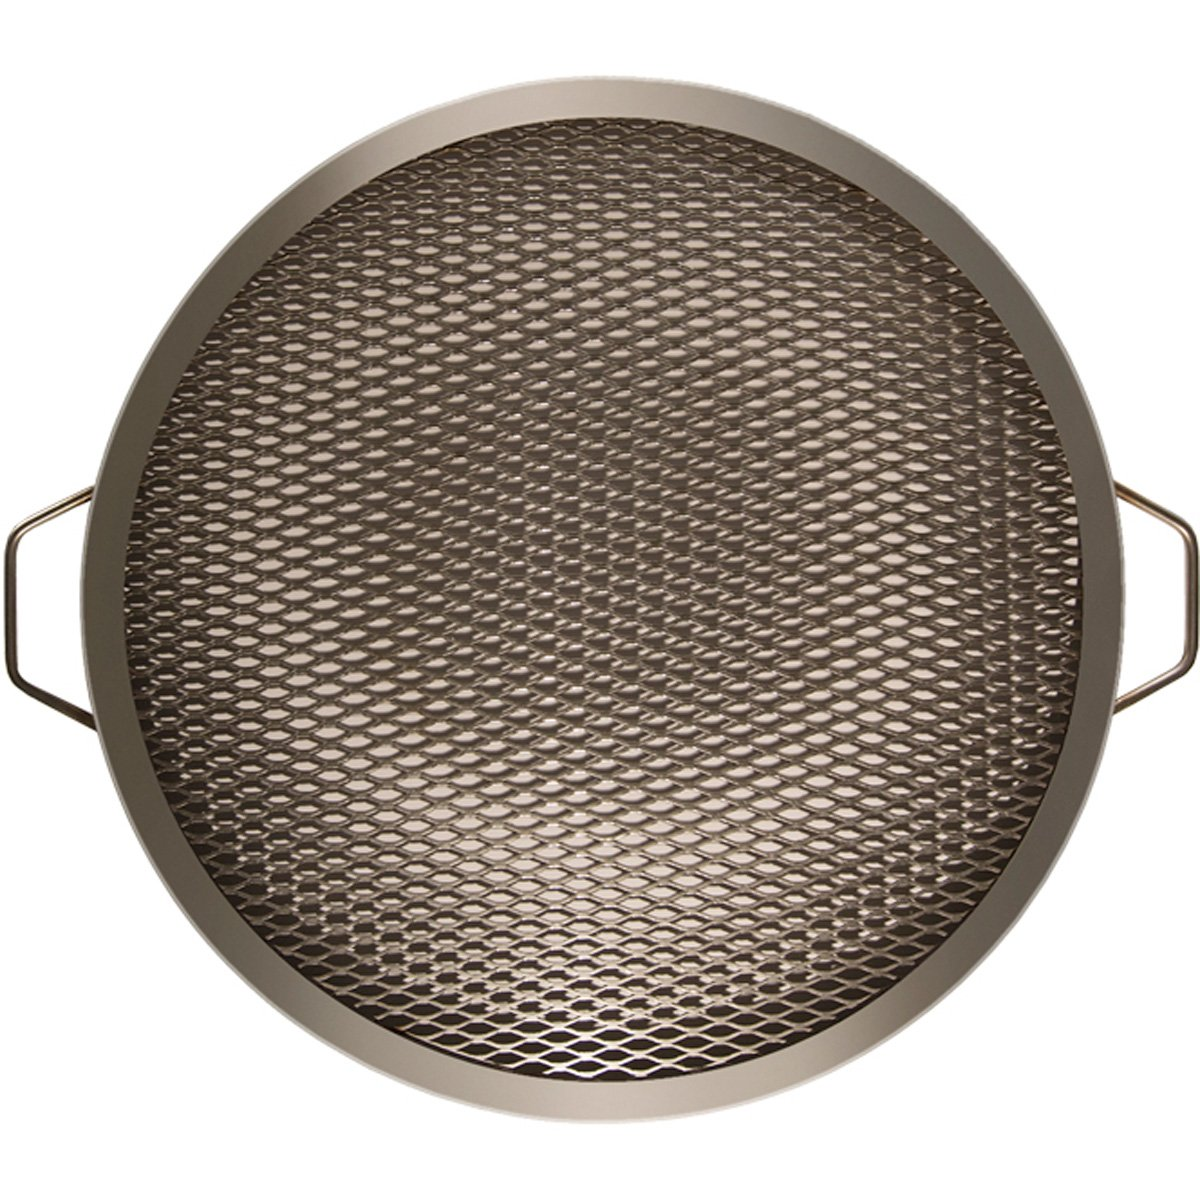 Ohio Flame 24'' Stainless Steel Cook Grate - Stainless Steel